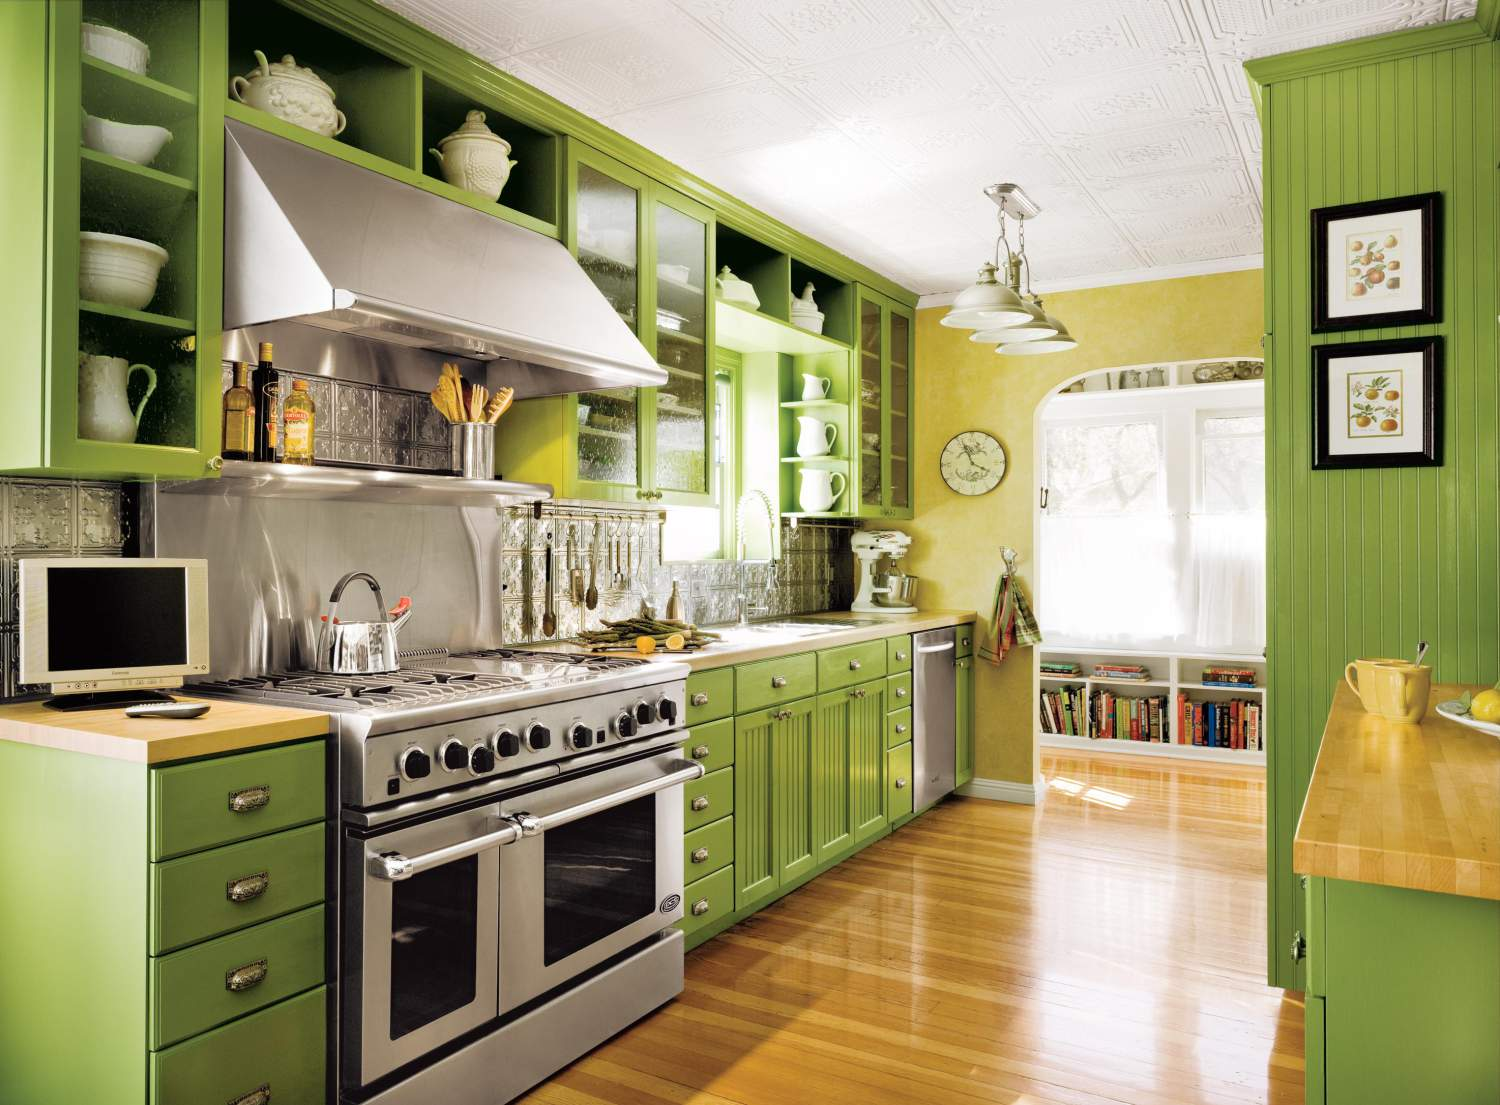 green_kitchen7.jpg [1500x1105px]